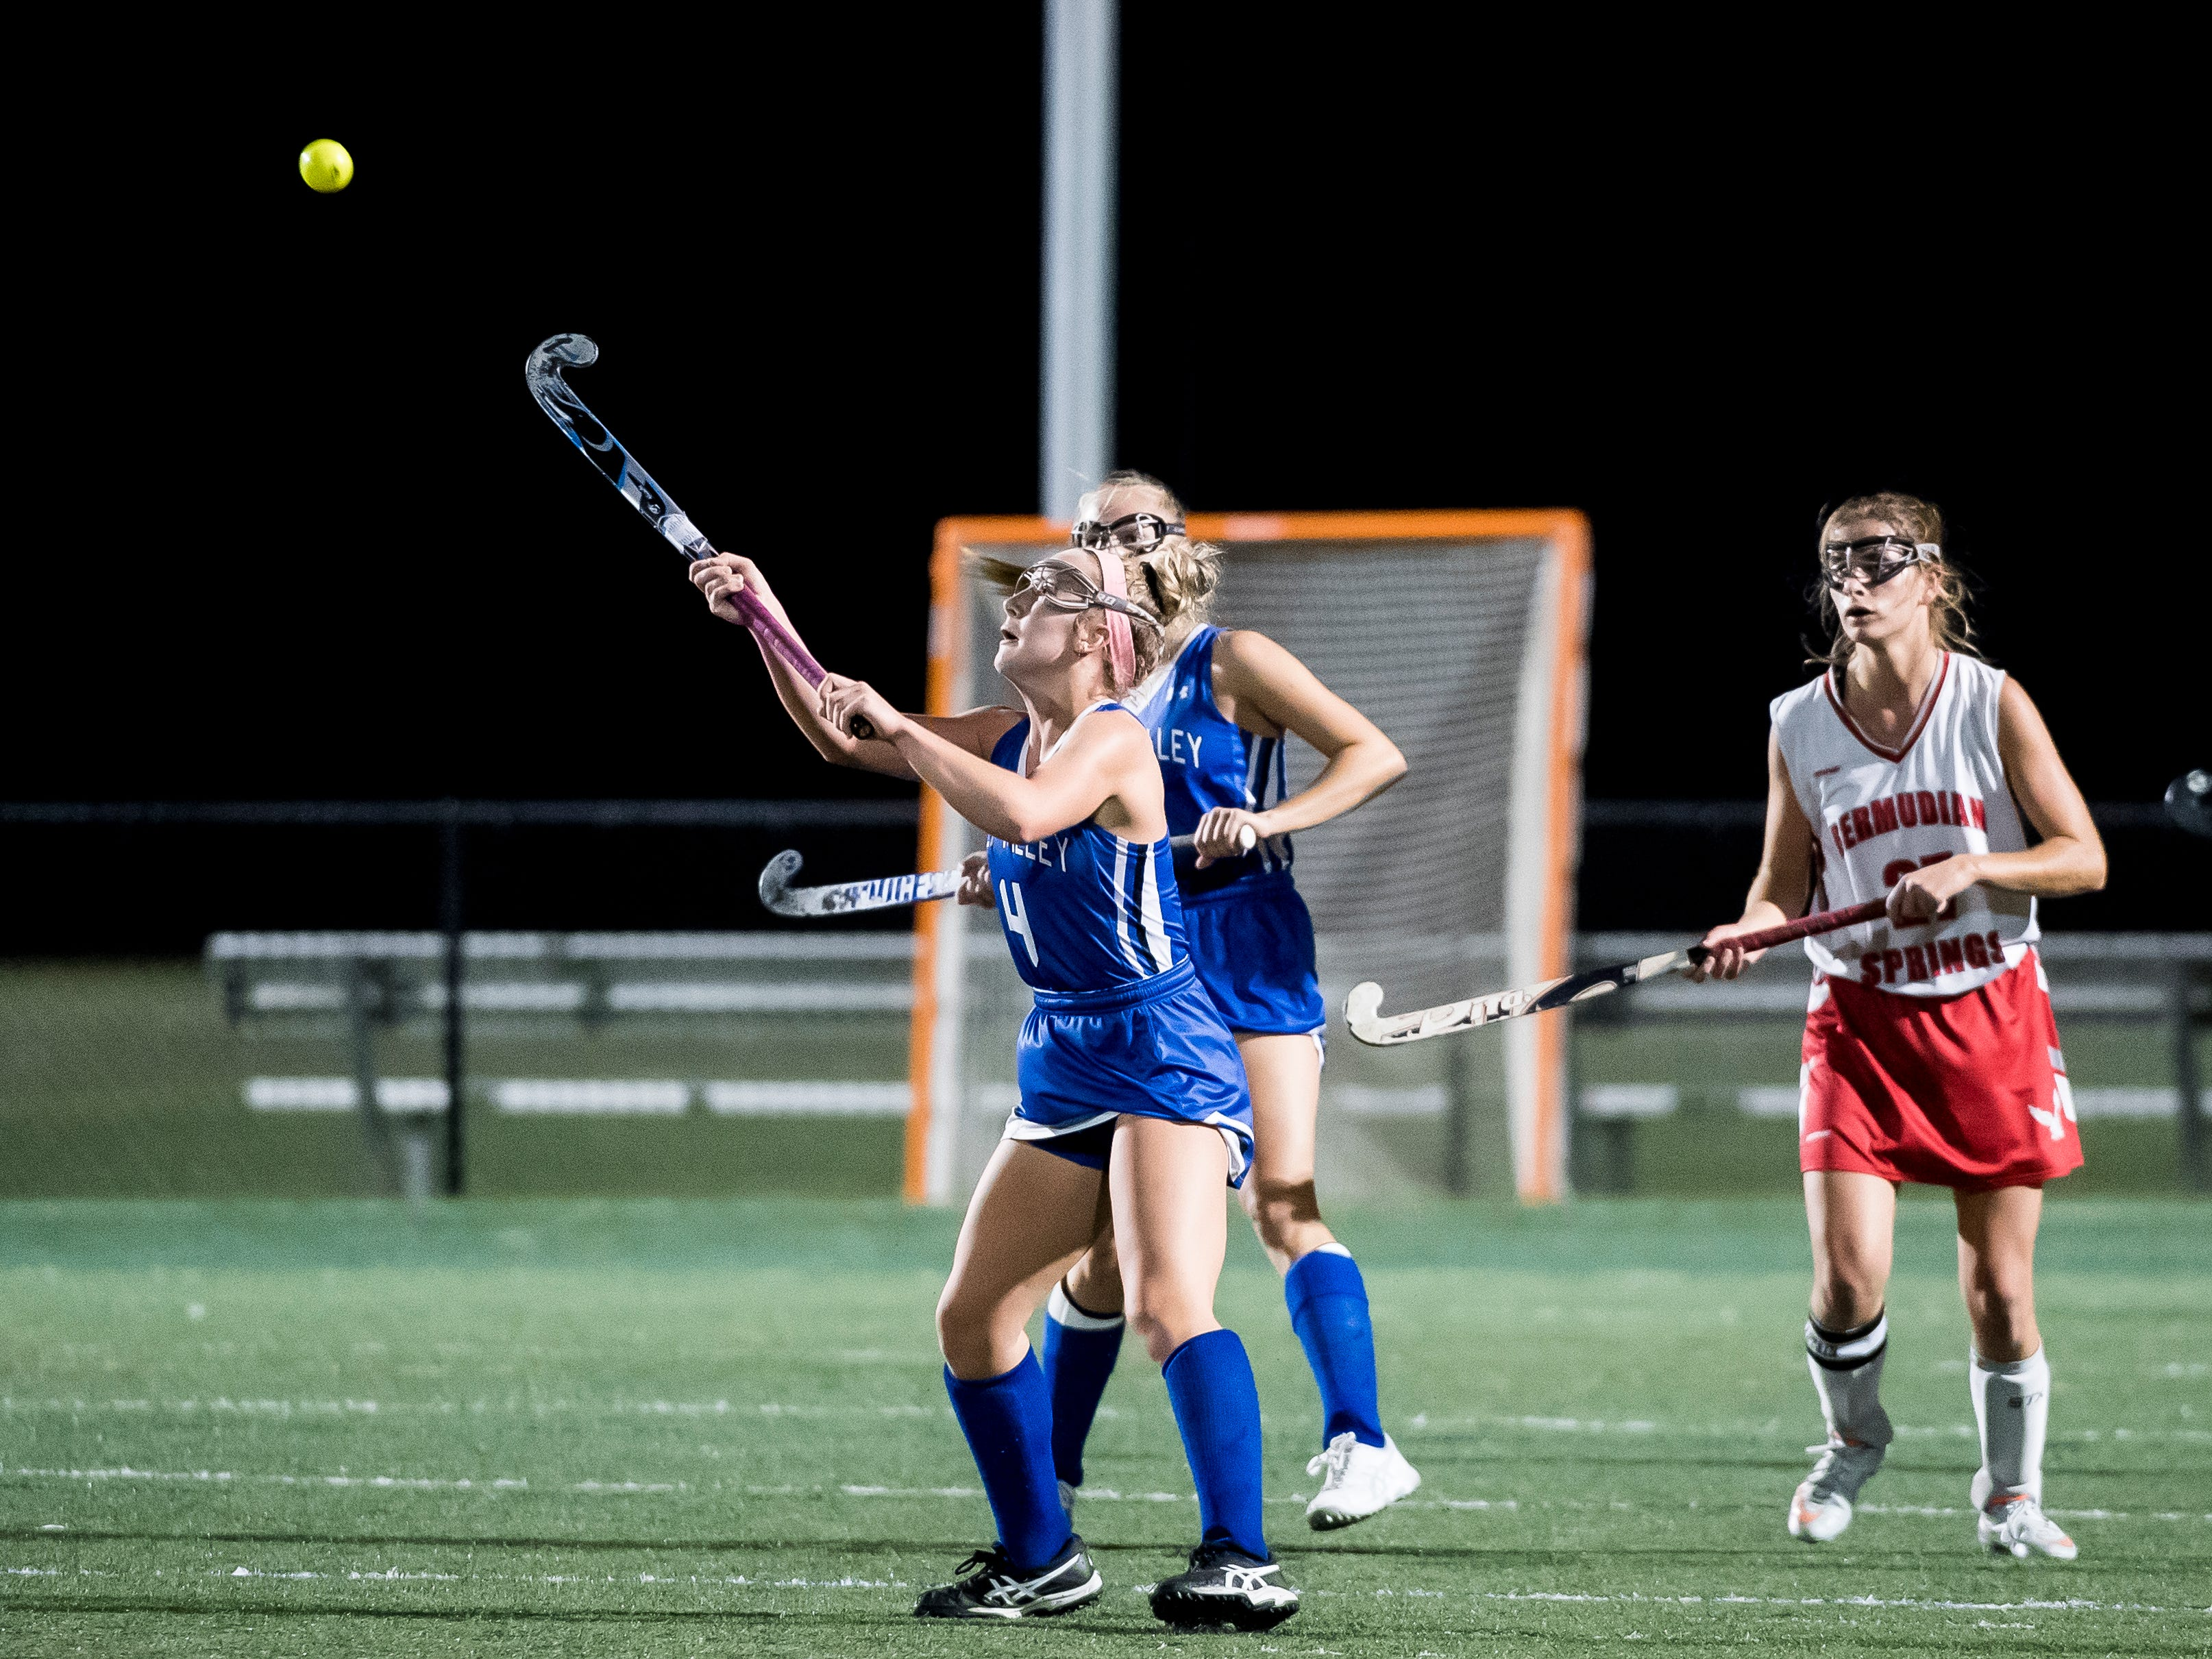 Oley Valley's Sophia Gladieux hits a high ball during a District III Class A semifinal game against Bermudian Springs at Lower Dauphin Middle School on Wednesday, October 31, 2018. The Eagles fell 5-0.